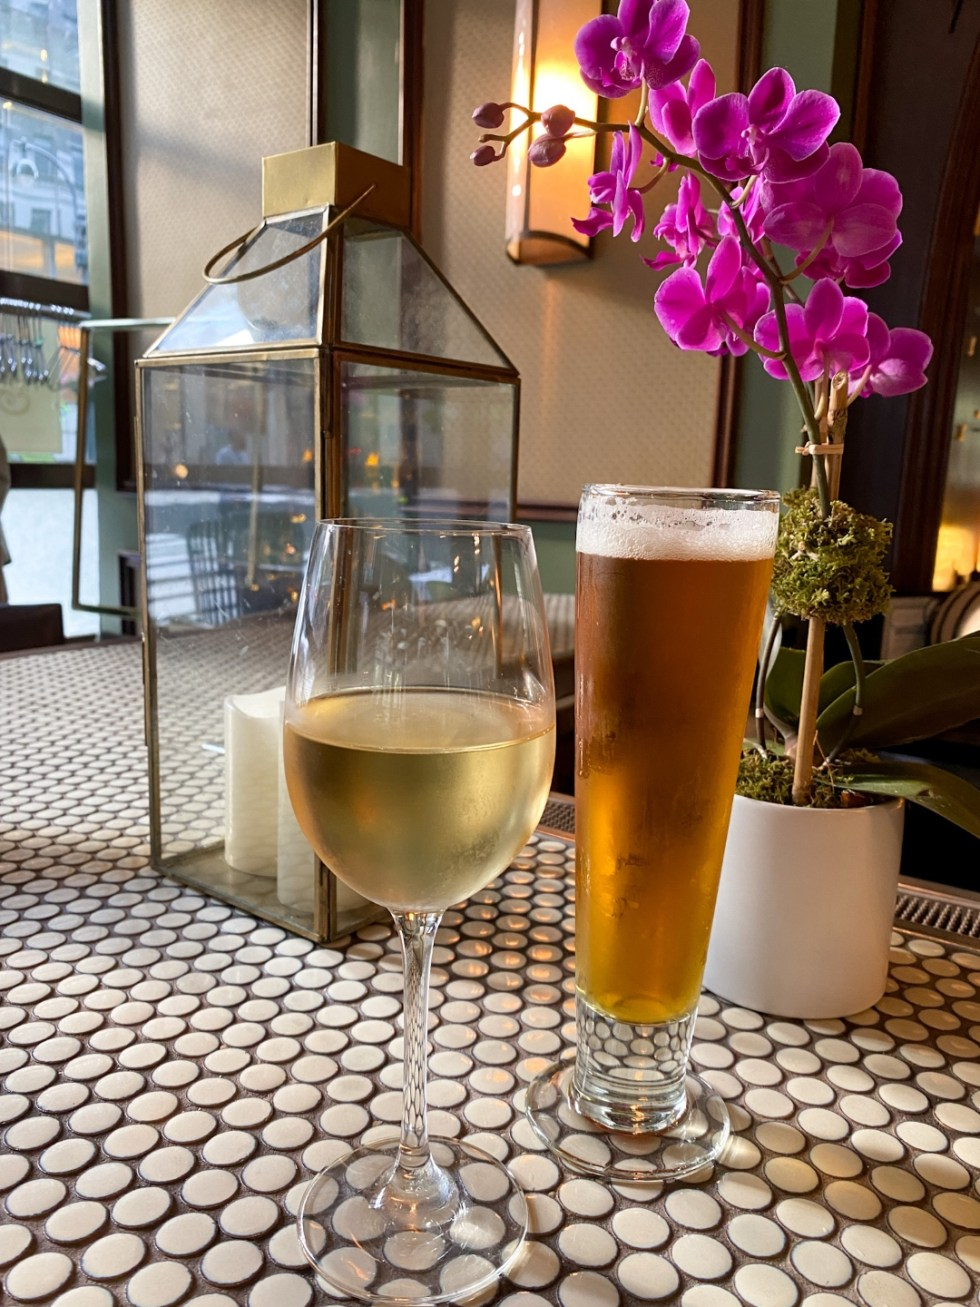 NYC Summer Weekend: Things to Do in NYC in the Summer - I'm Fixin' To - @imfixintoblog   NYC Summer Weekend by popular NC travel blog, I'm Fixin' To: image of a glass of white wine and a glass of beer at the Madison and Vine restaurant.